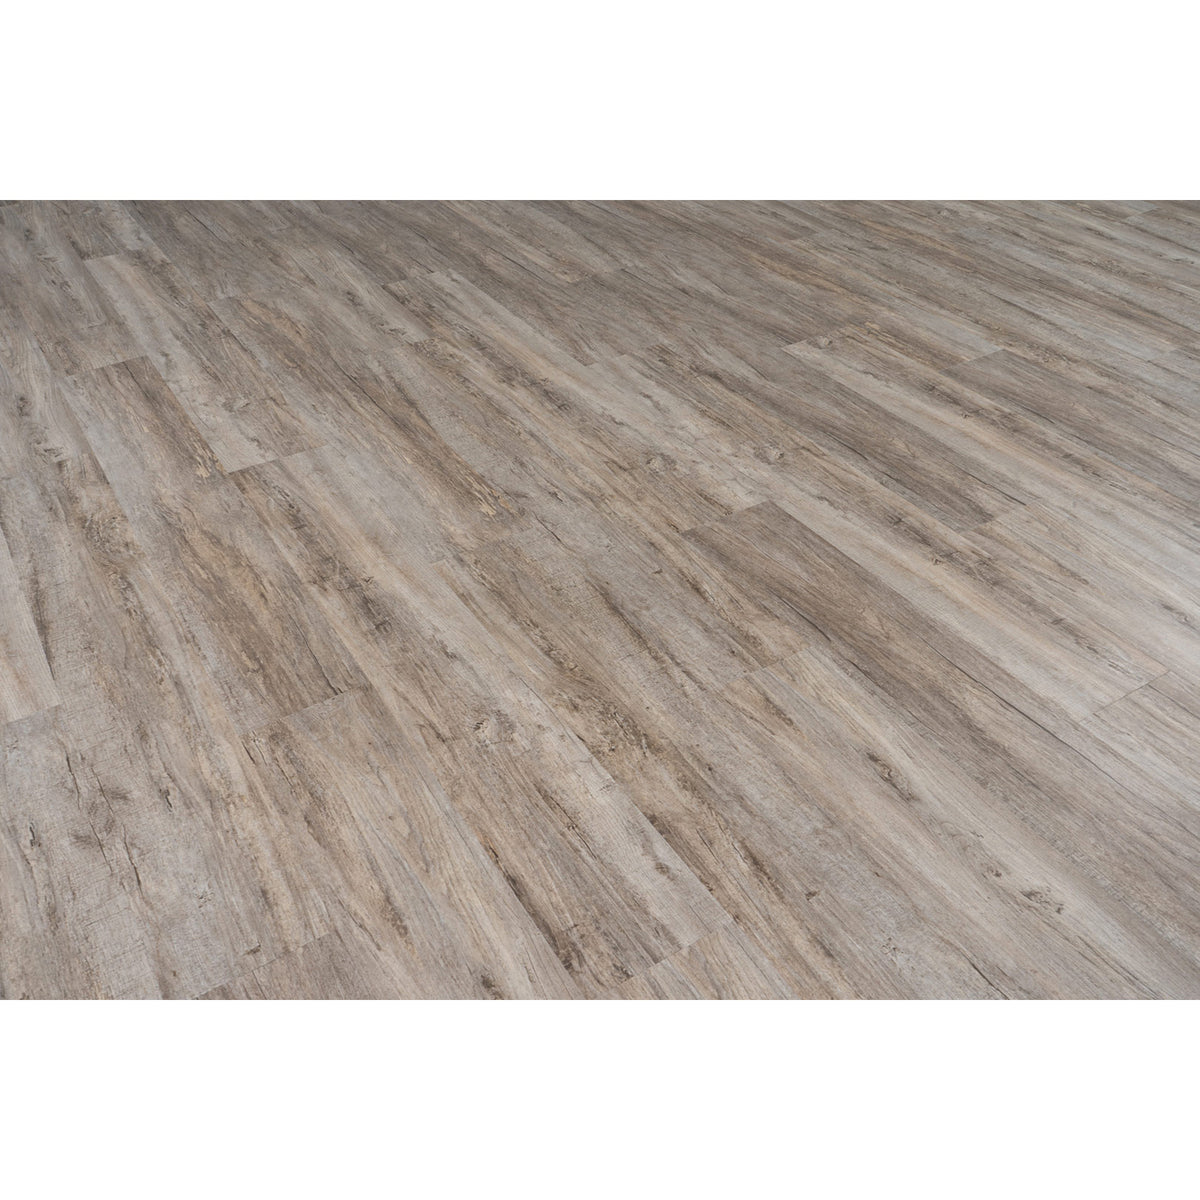 Provenza Floors - Uptown Chic Luxury Vinyl Plank - Rock N' Roll